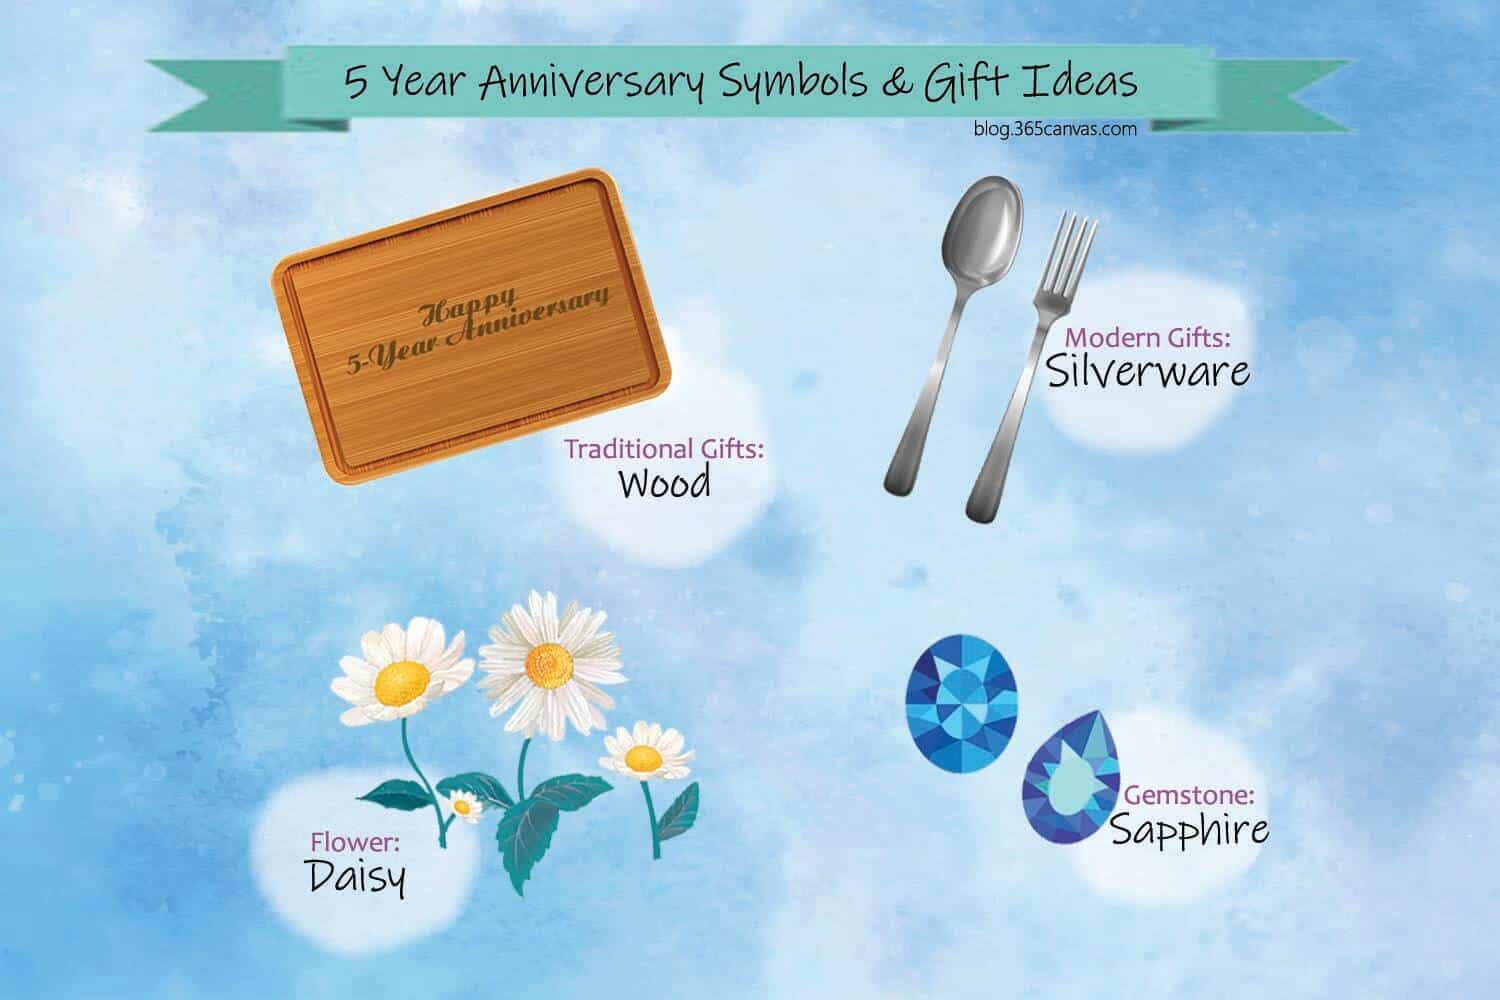 5 year anniversary gifts and symbol